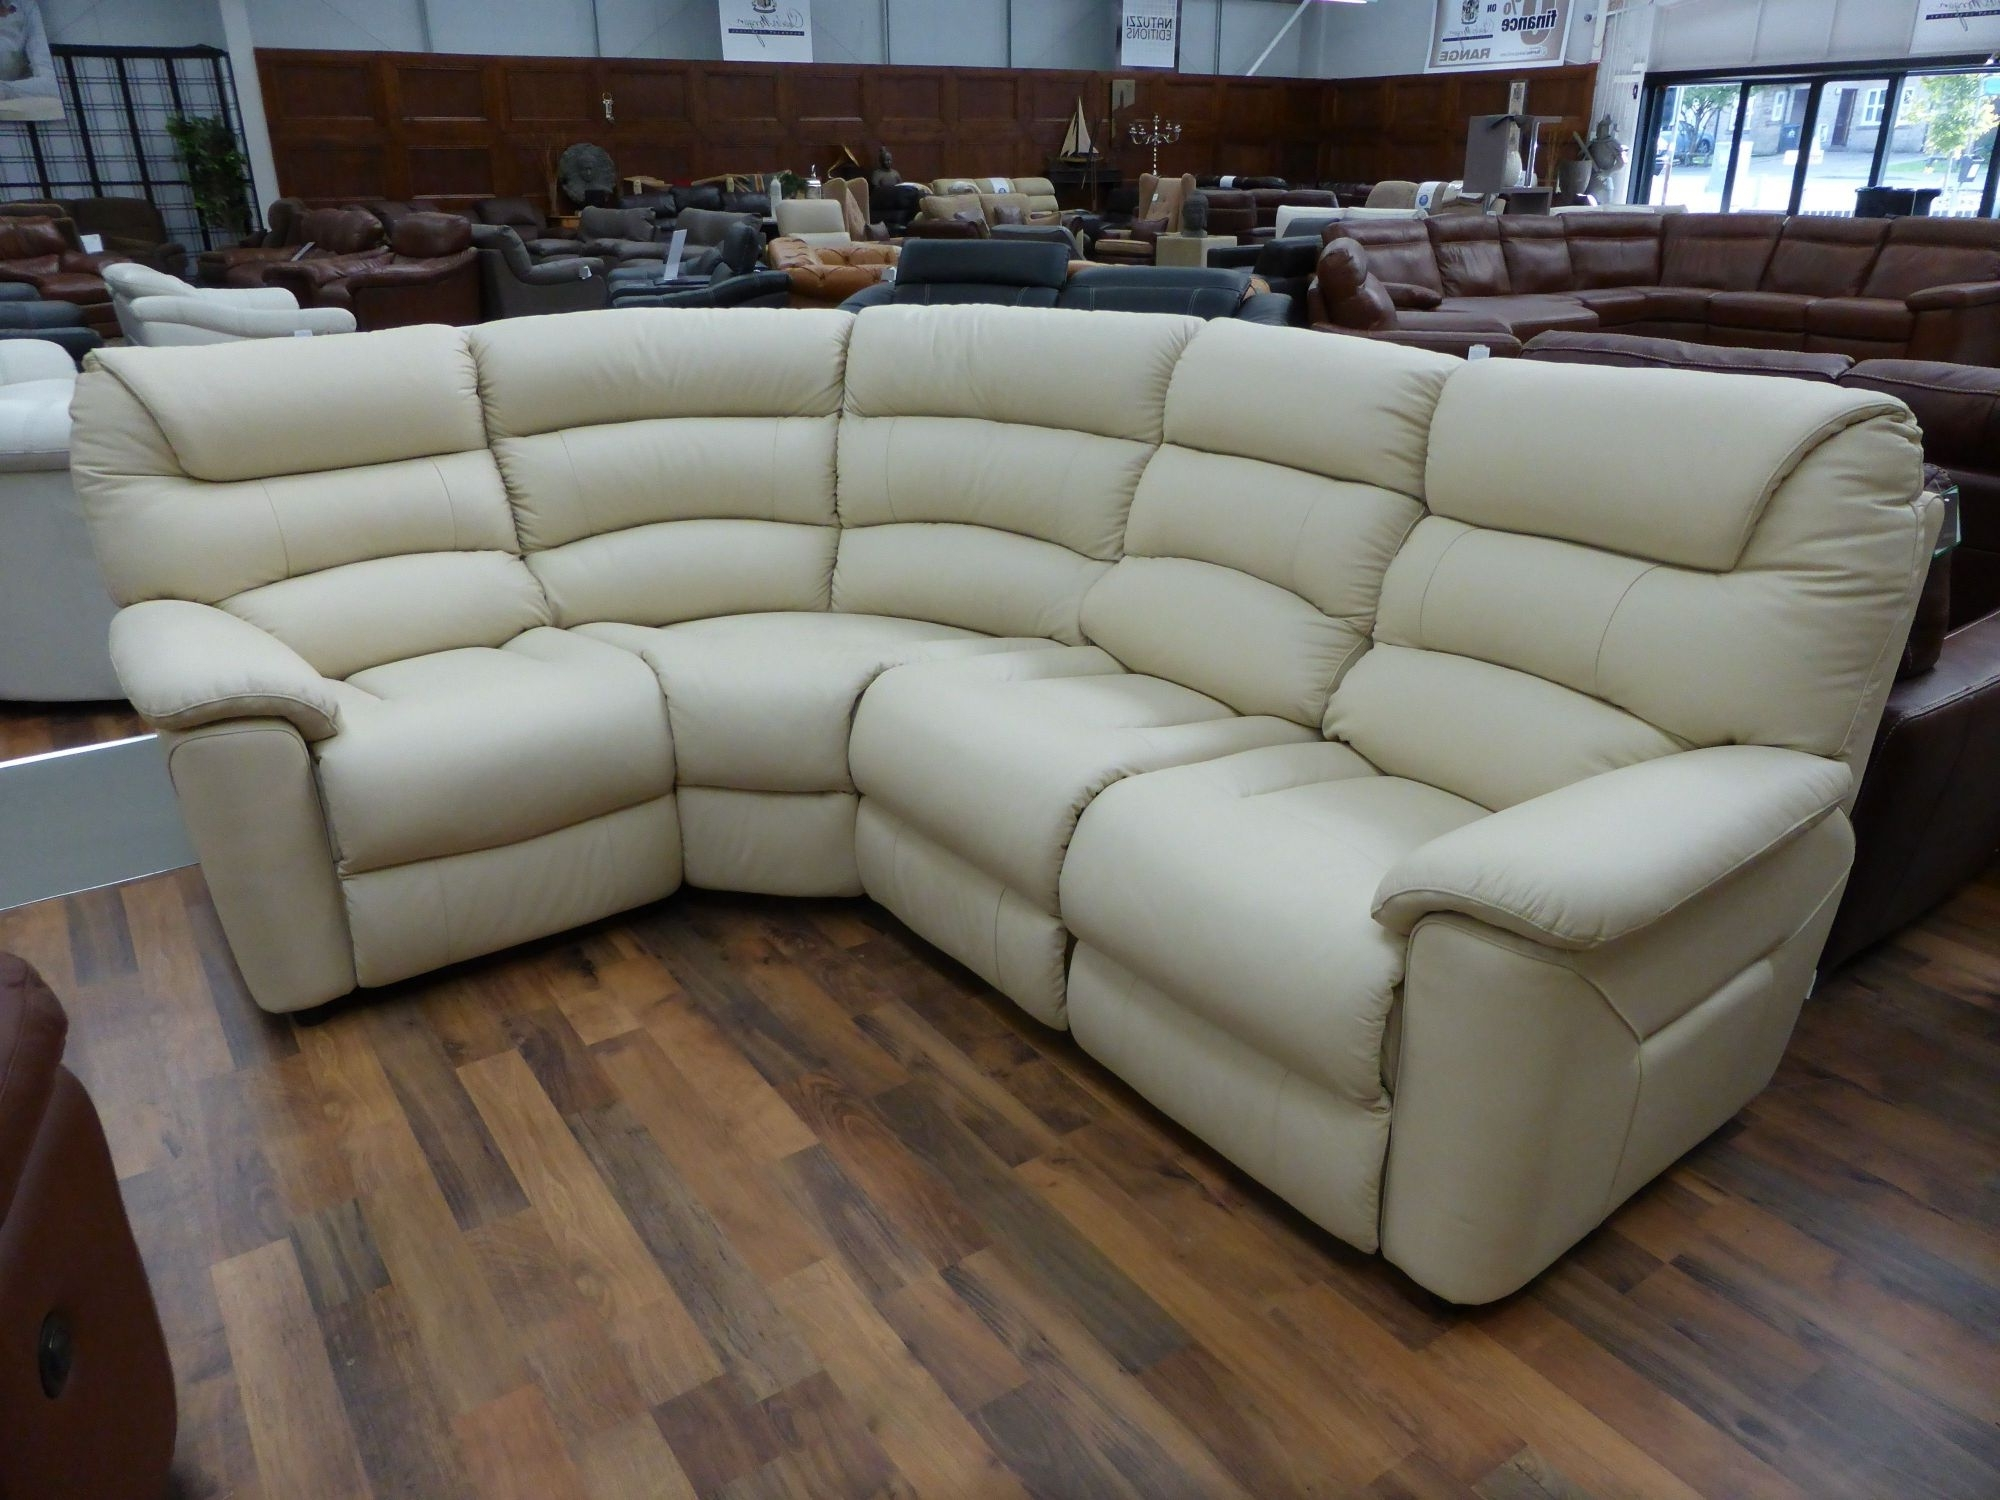 Lazyboy Sectional Sofas Regarding Current Incredible Laboy Sofa Frame Construction Leather Reclining (View 19 of 20)